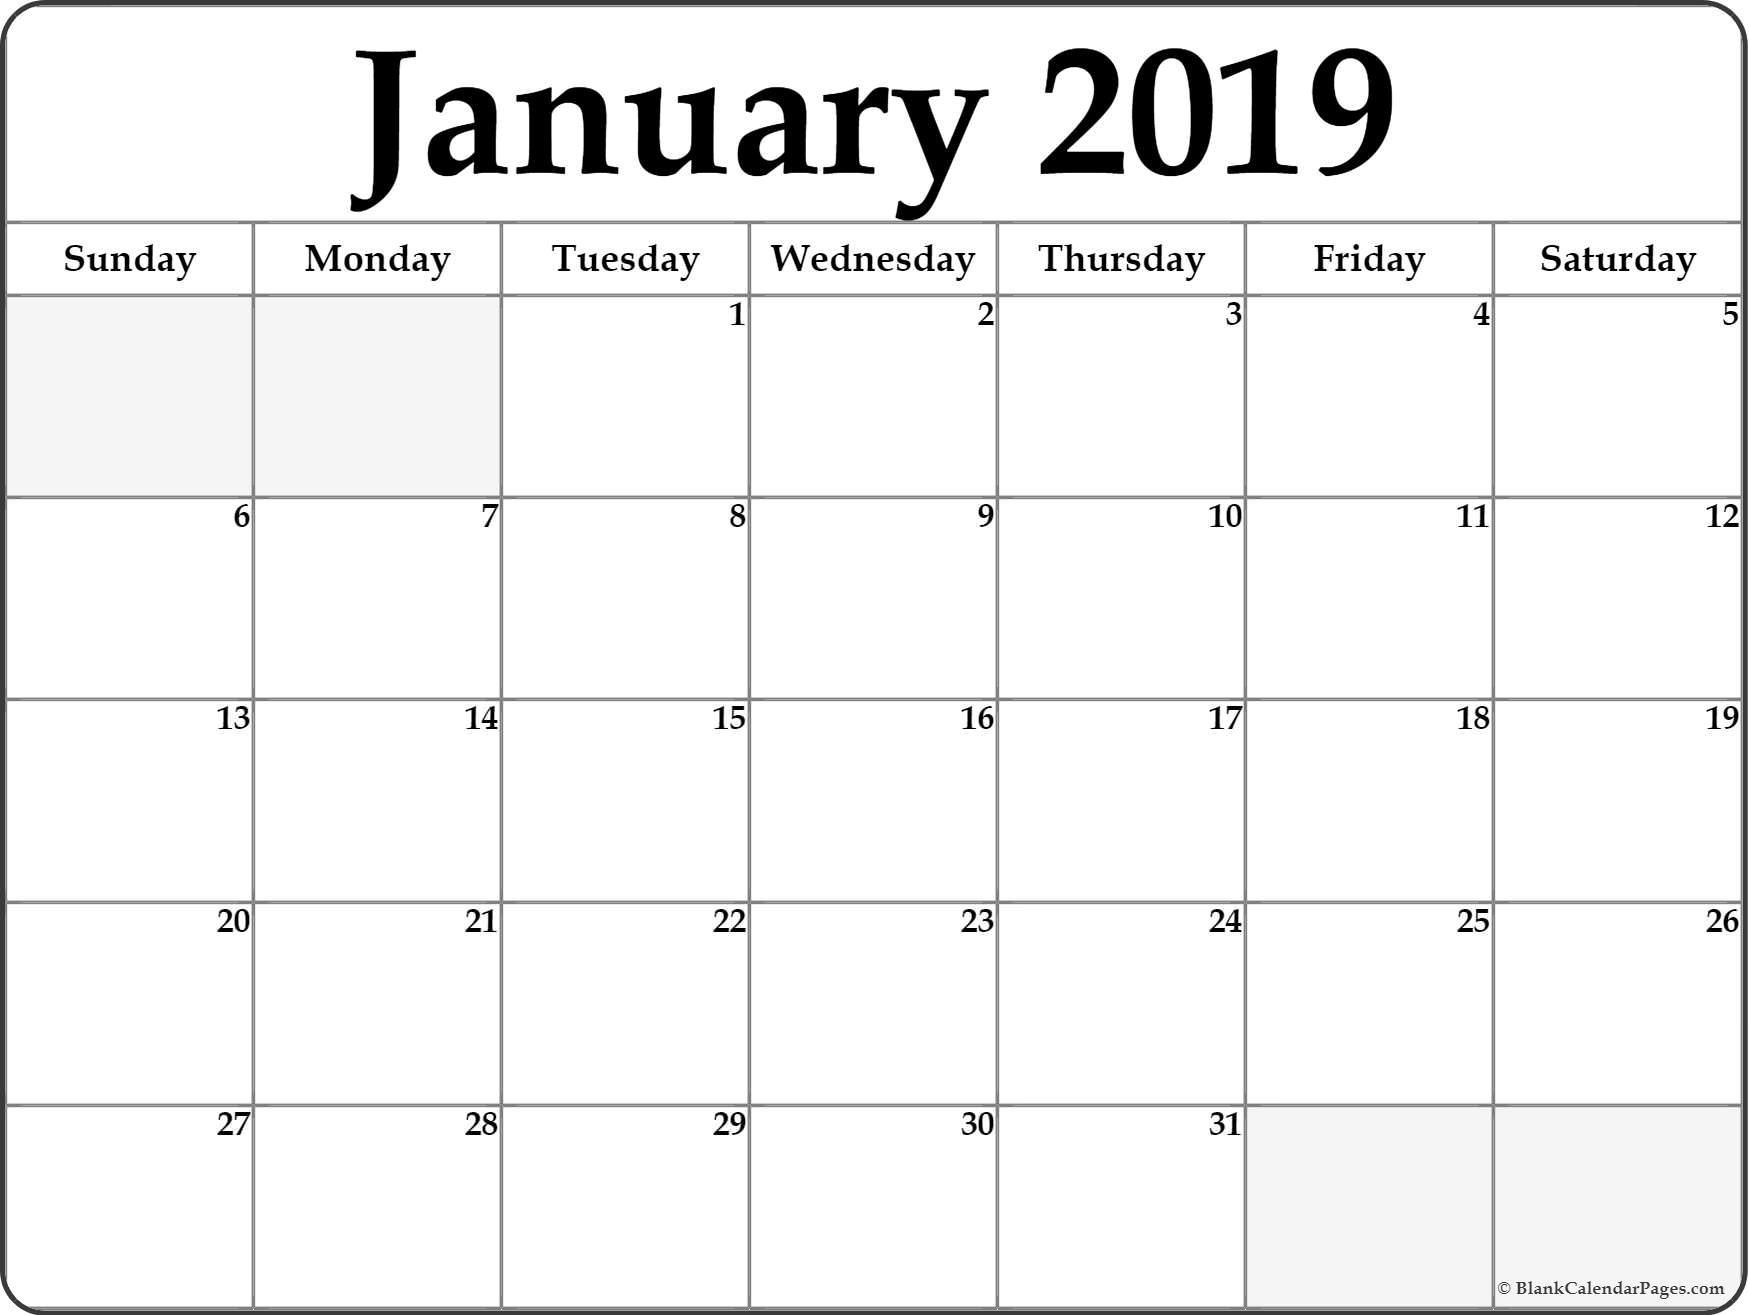 Image Result For Printable 2019 Calendar | Calendars & Planners Calendar 2019 Template